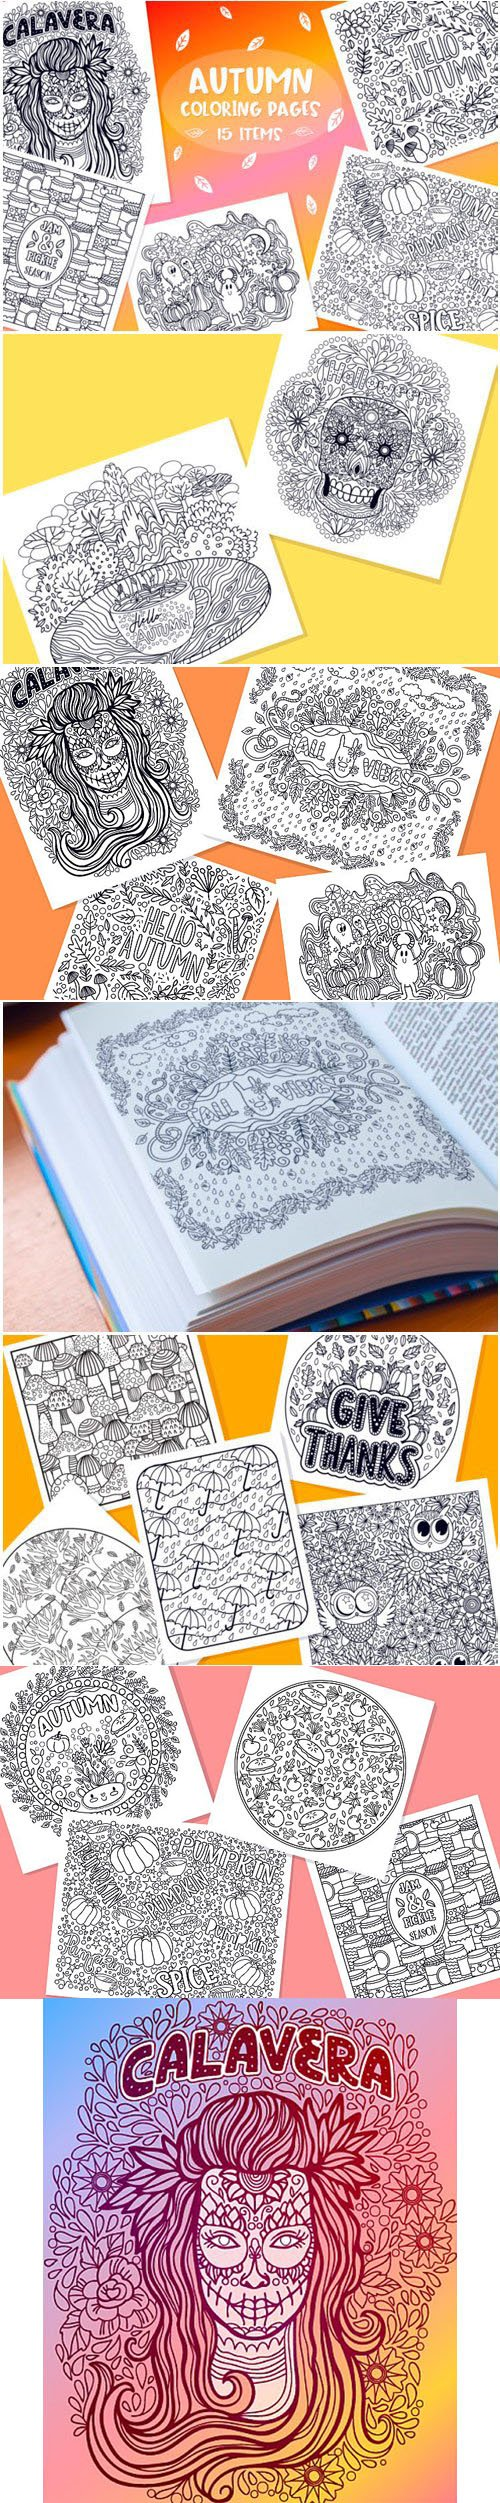 Creativefabrica - Autumn Coloring Pages Bundle